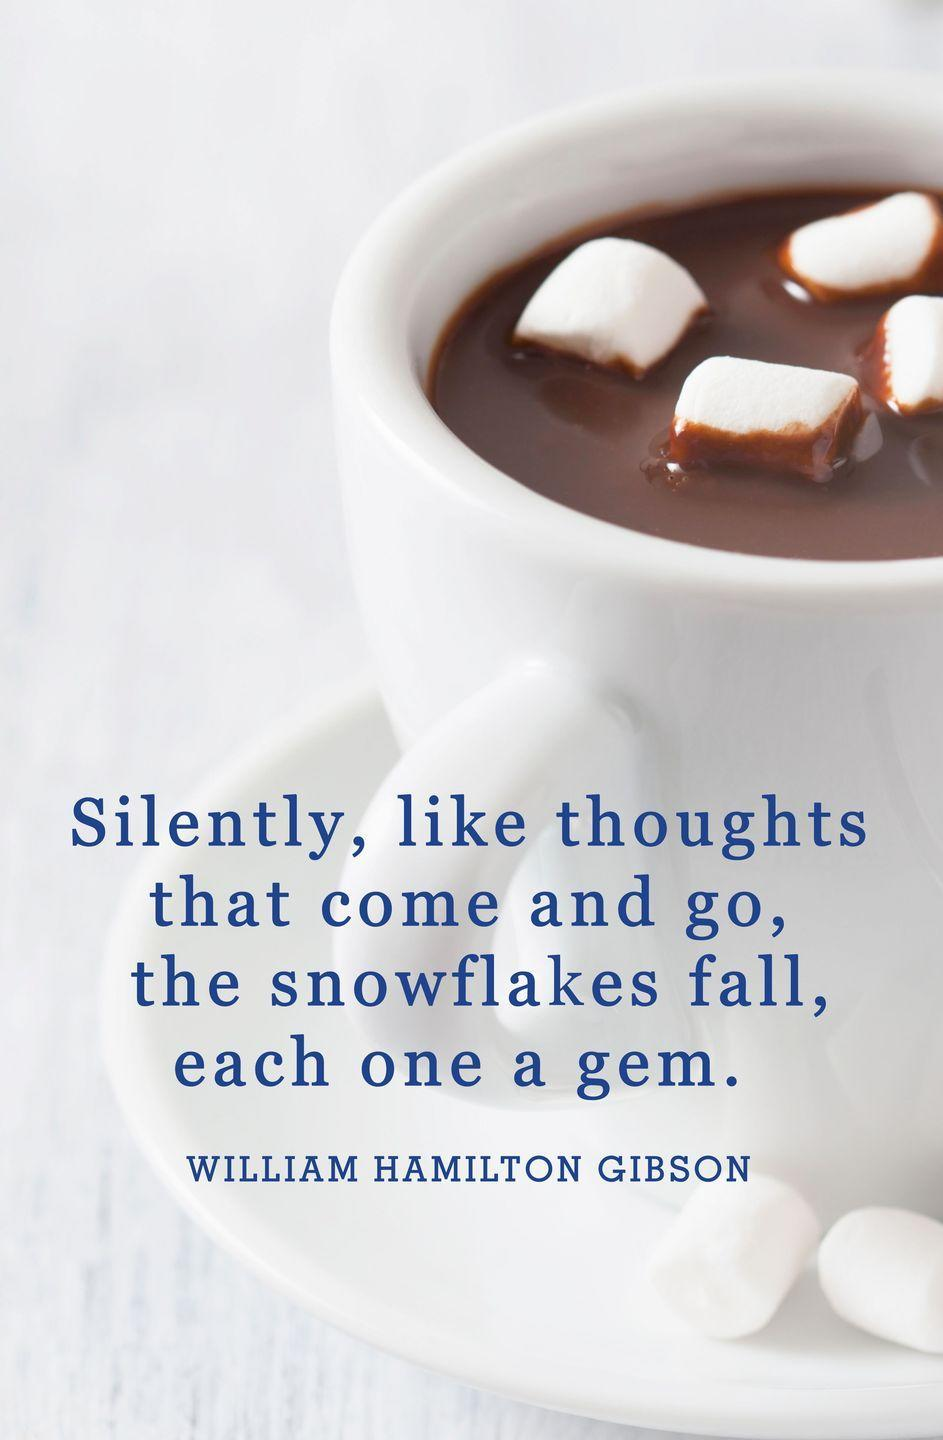 "<p>""Silently, like thoughts that come and go, the snowflakes fall, each one a gem.""</p>"